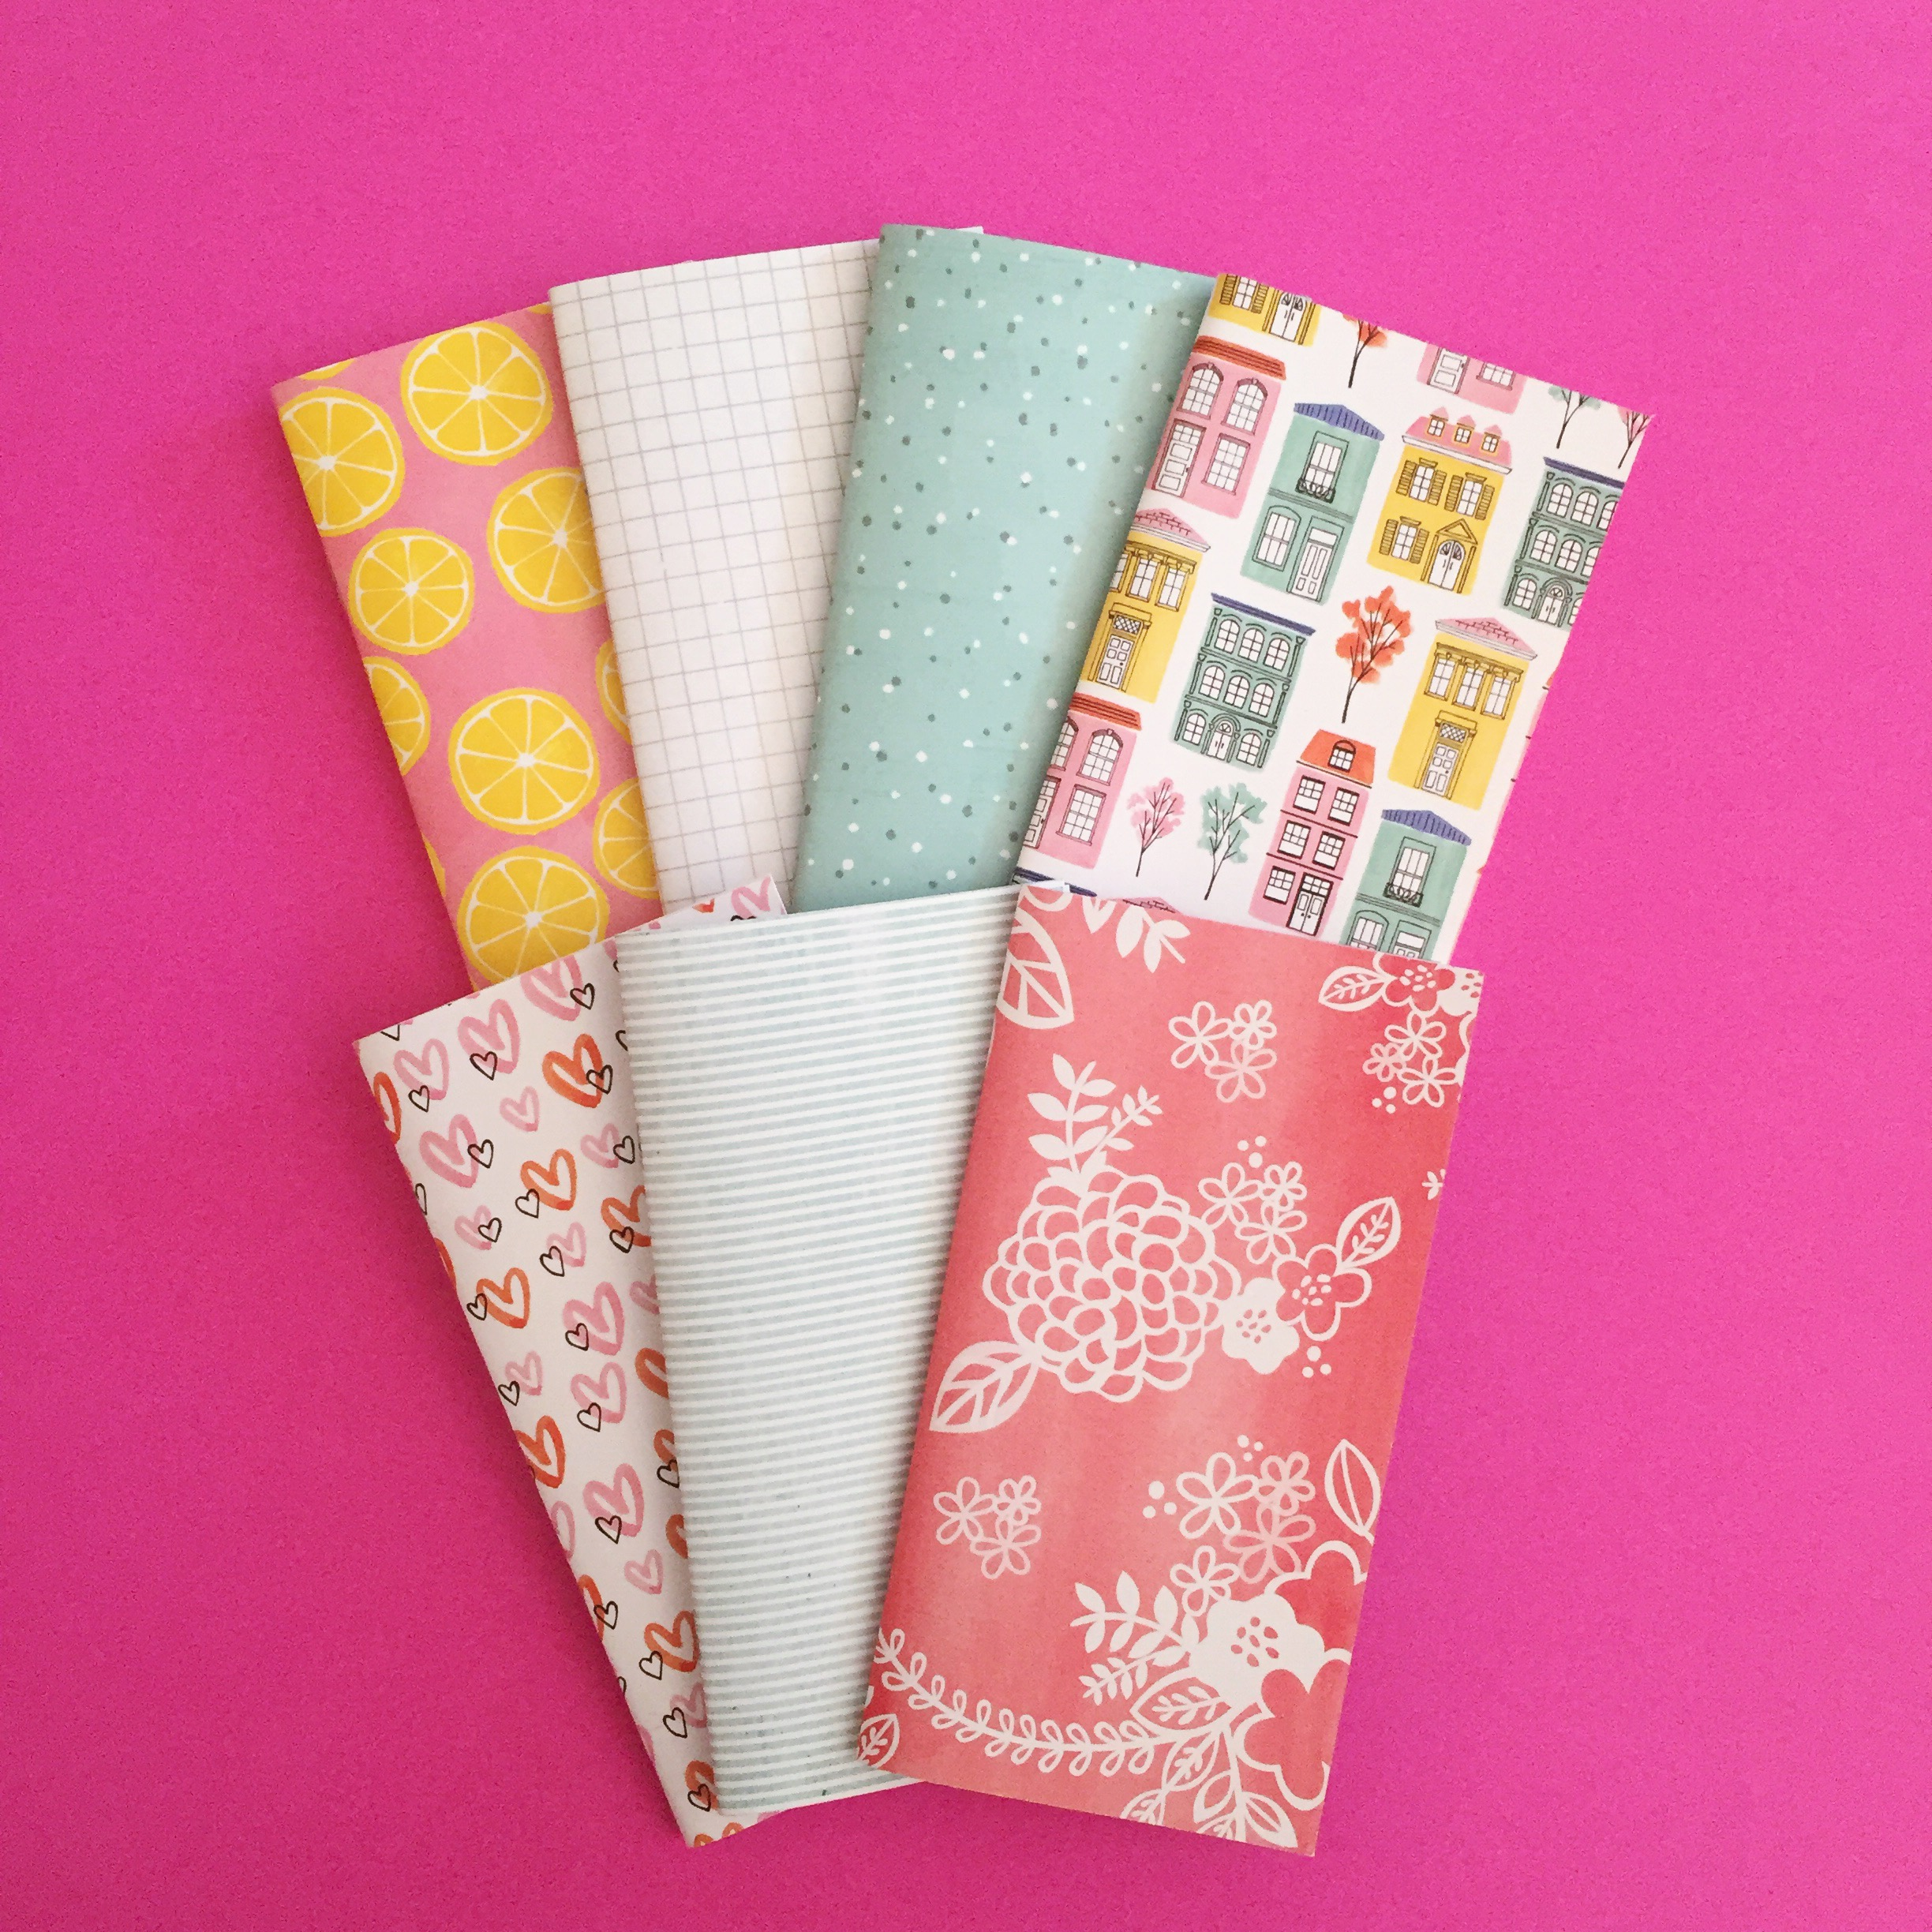 Colorful Traveler's Notebooks!